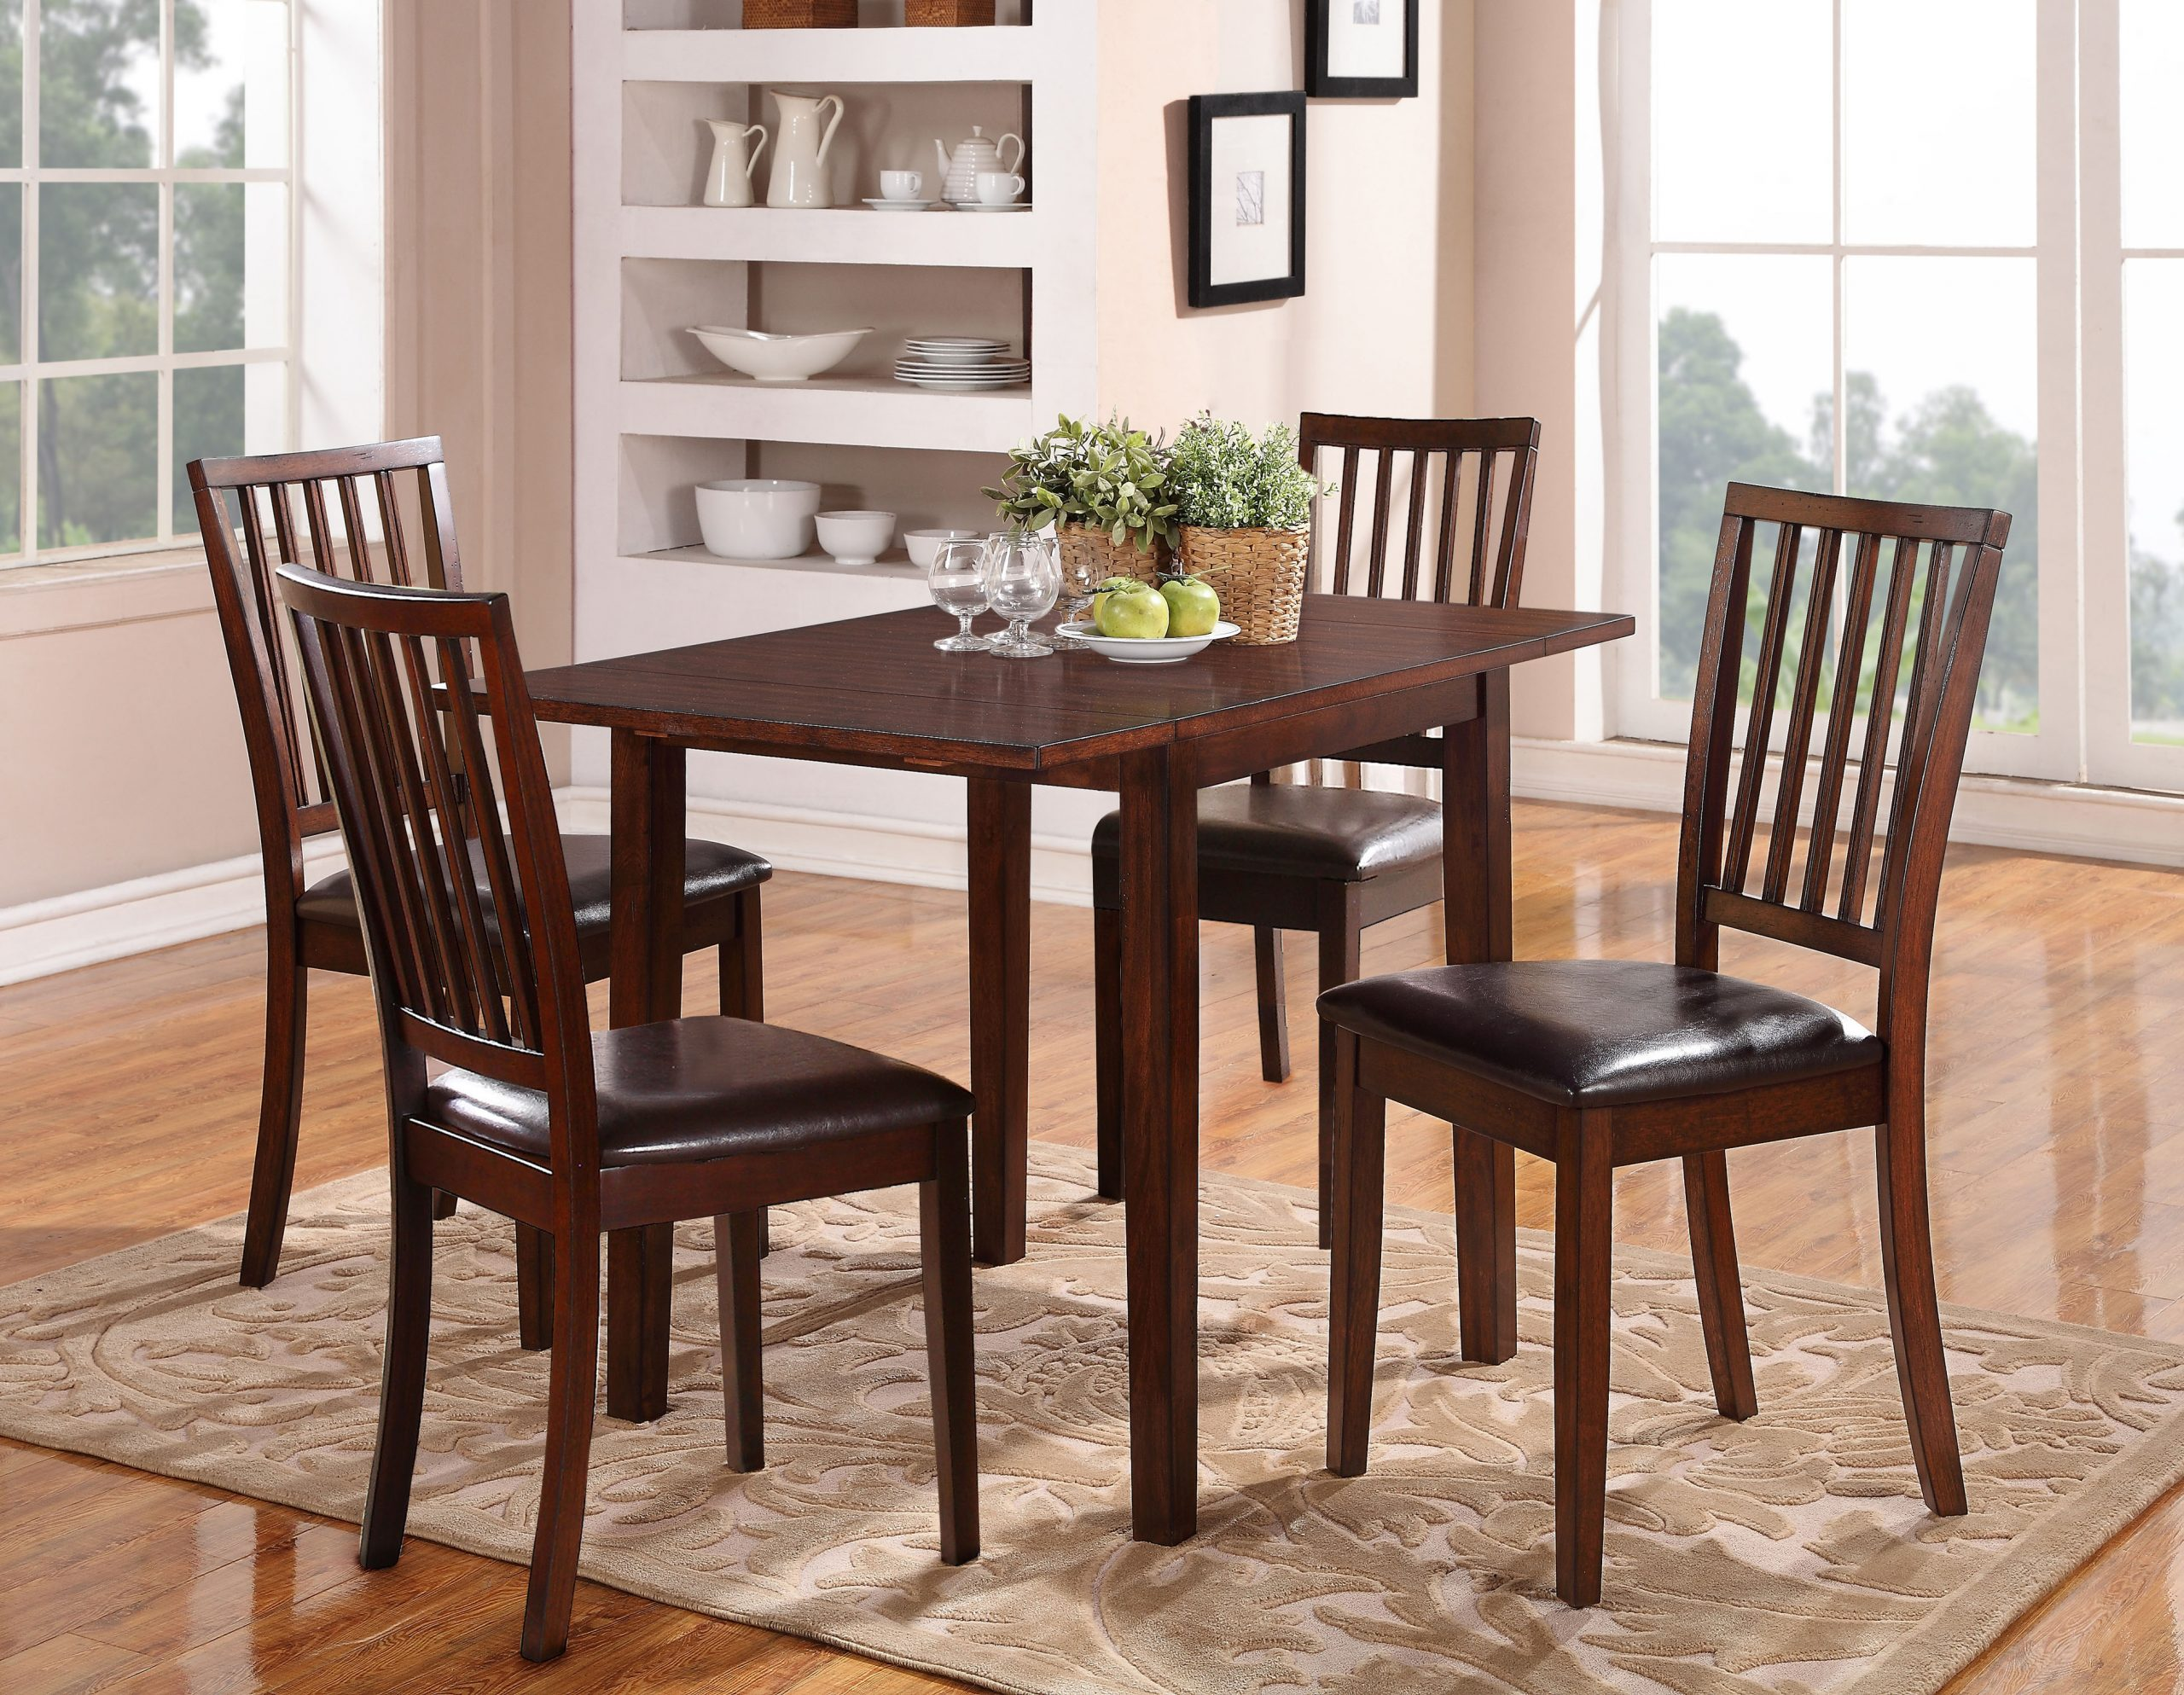 HH12078 RECT TBL W 4 CHAIRS